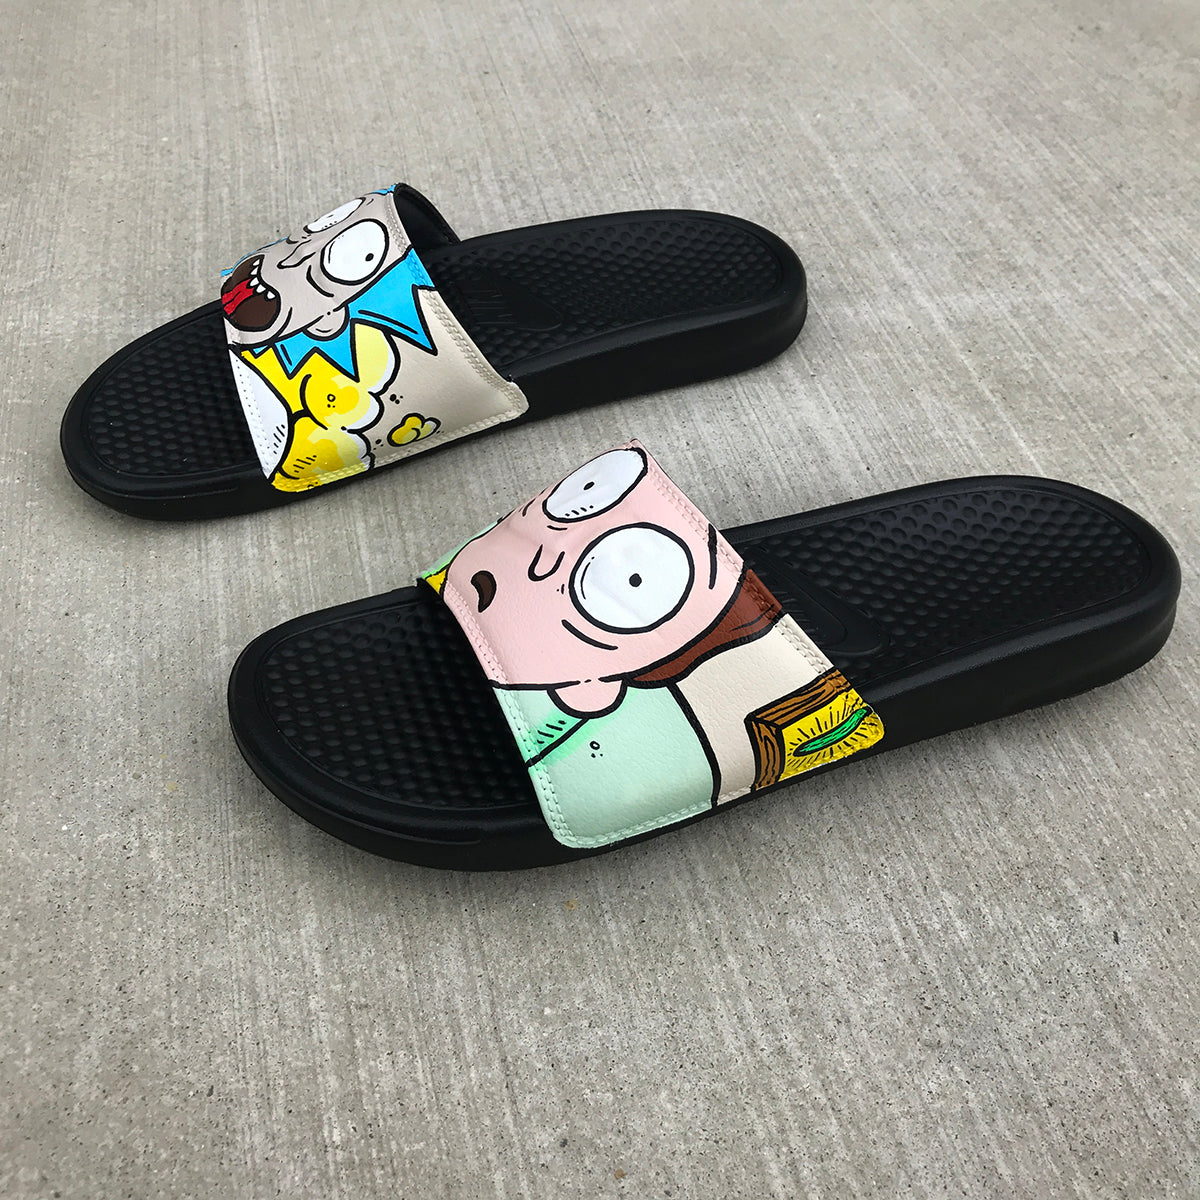 best loved 9efb3 8fa59 ... white cc42d bc936  clearance rick and morty themed hand painted nike  slides aka sandals flip flops 3f843 873b7